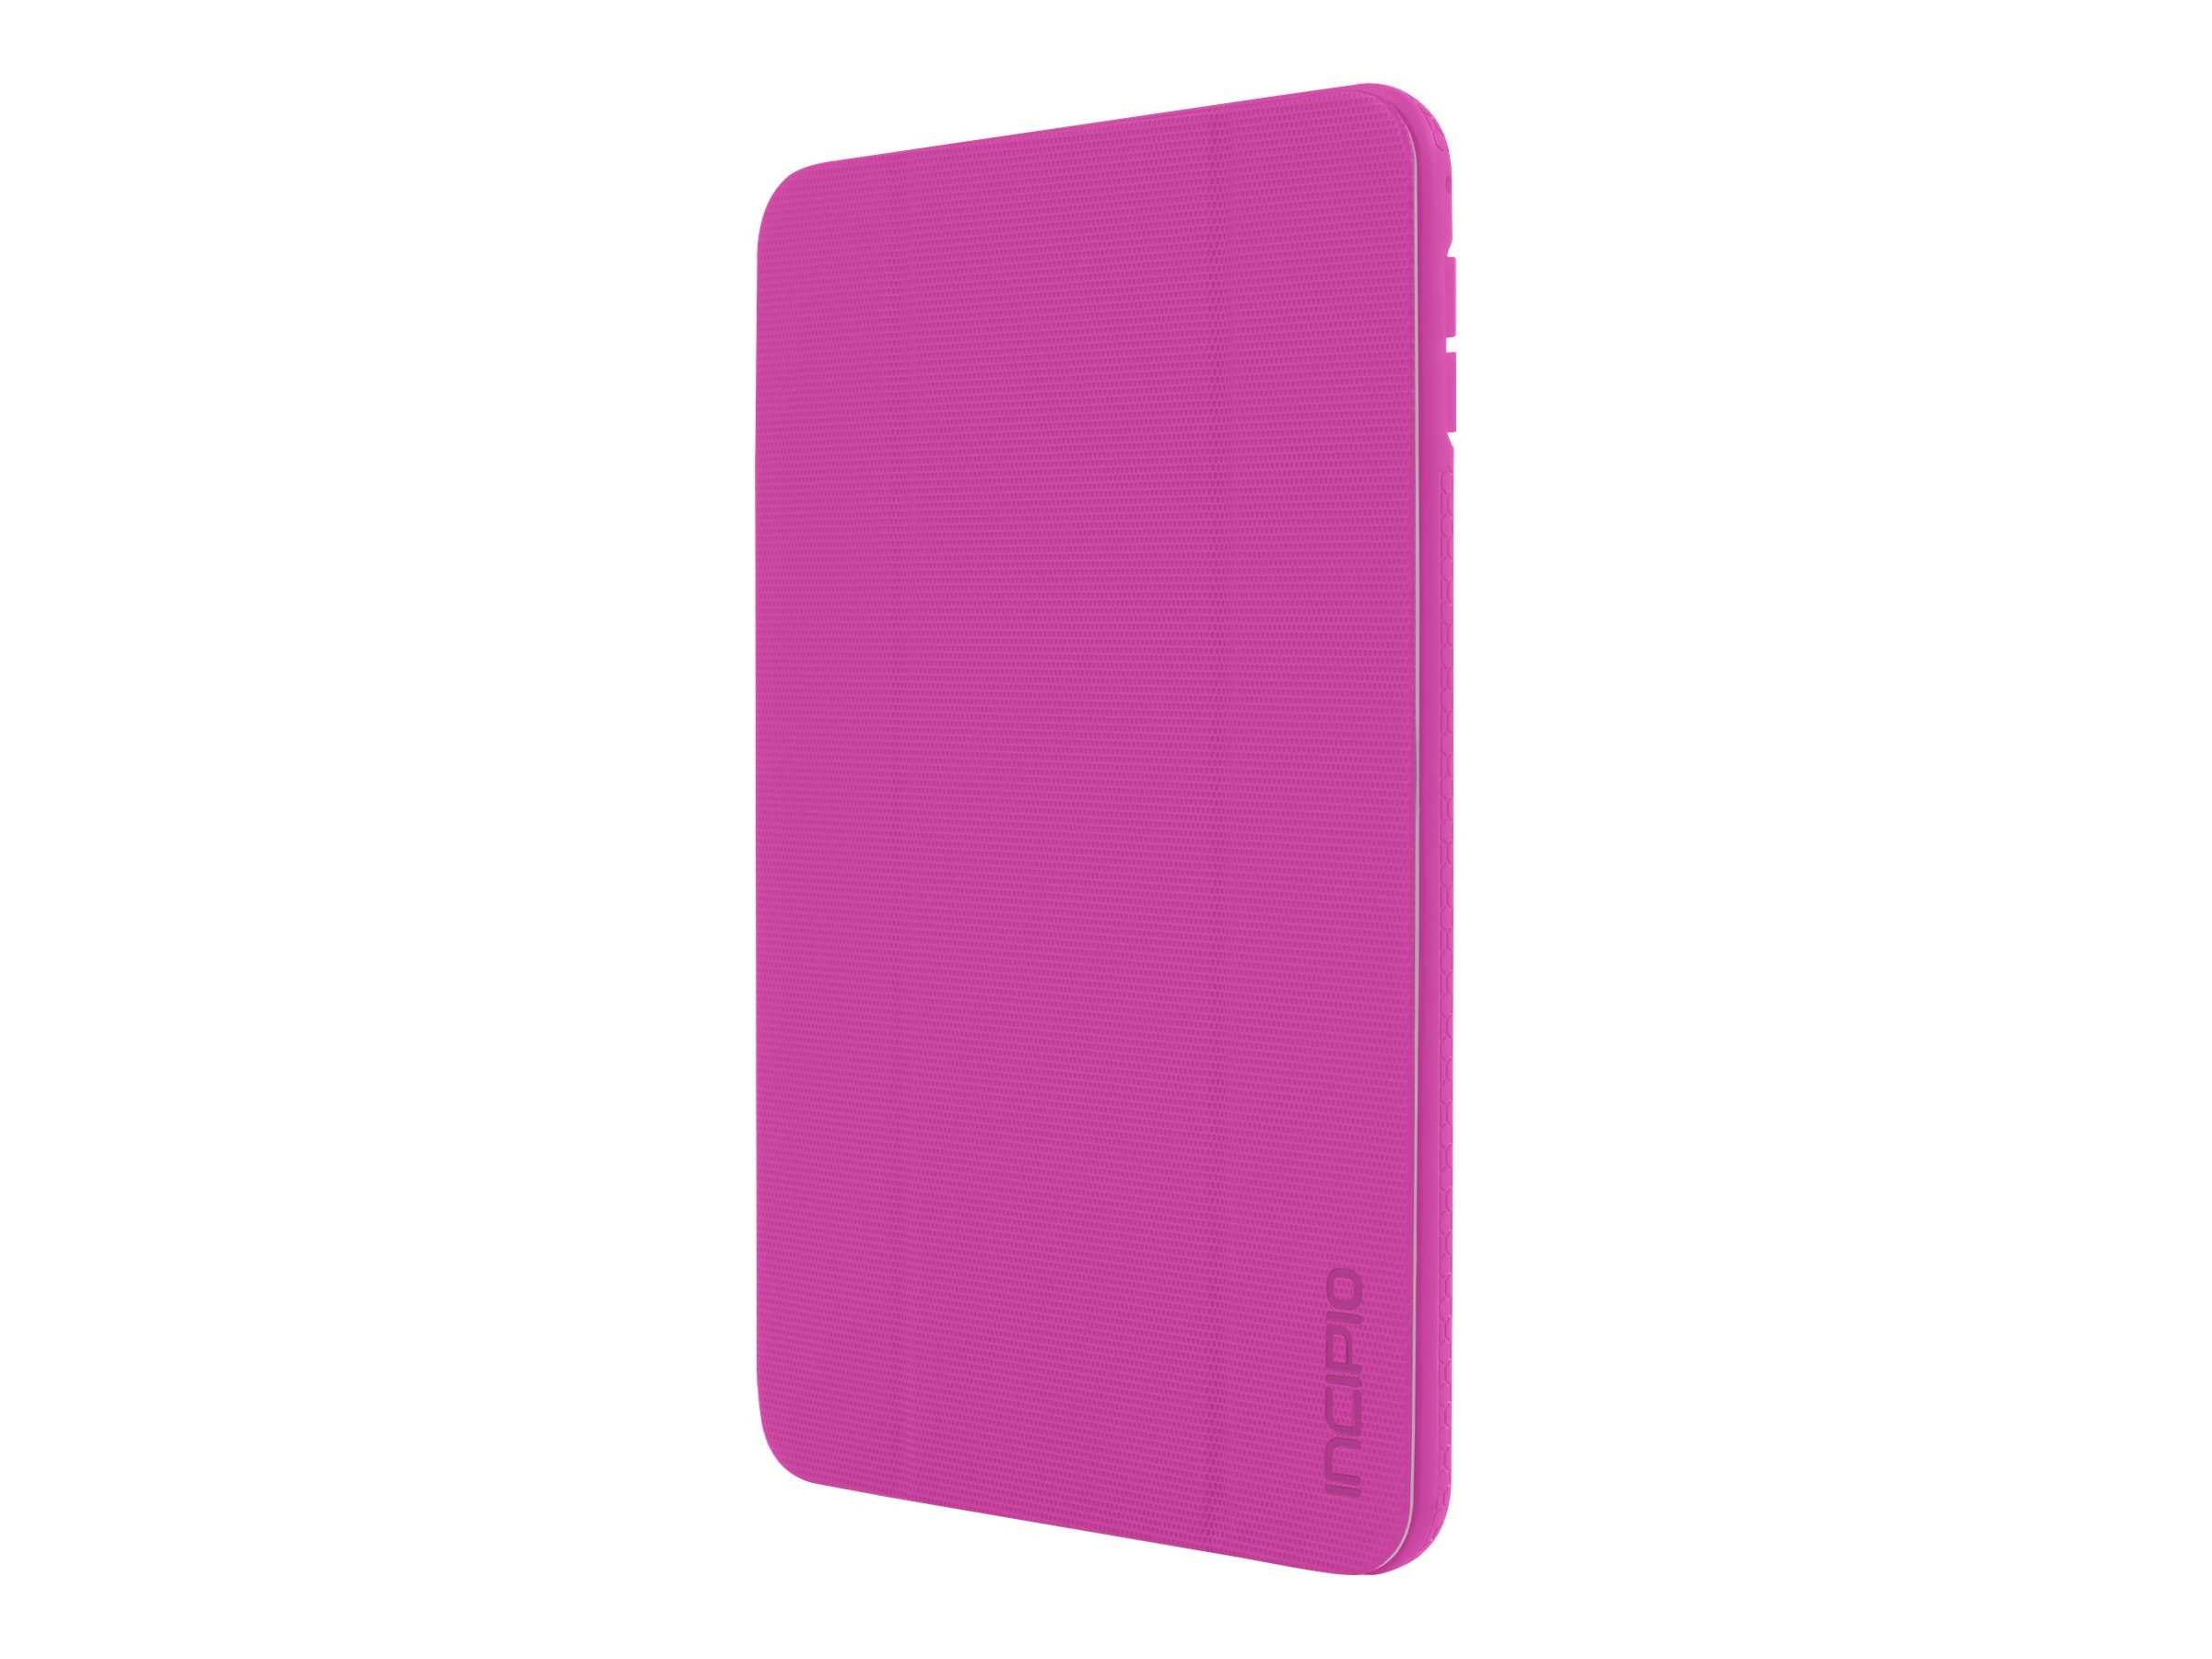 Incipio Octane Co-Molded Impact Absorbing Folio for iPad mini 4, Pink